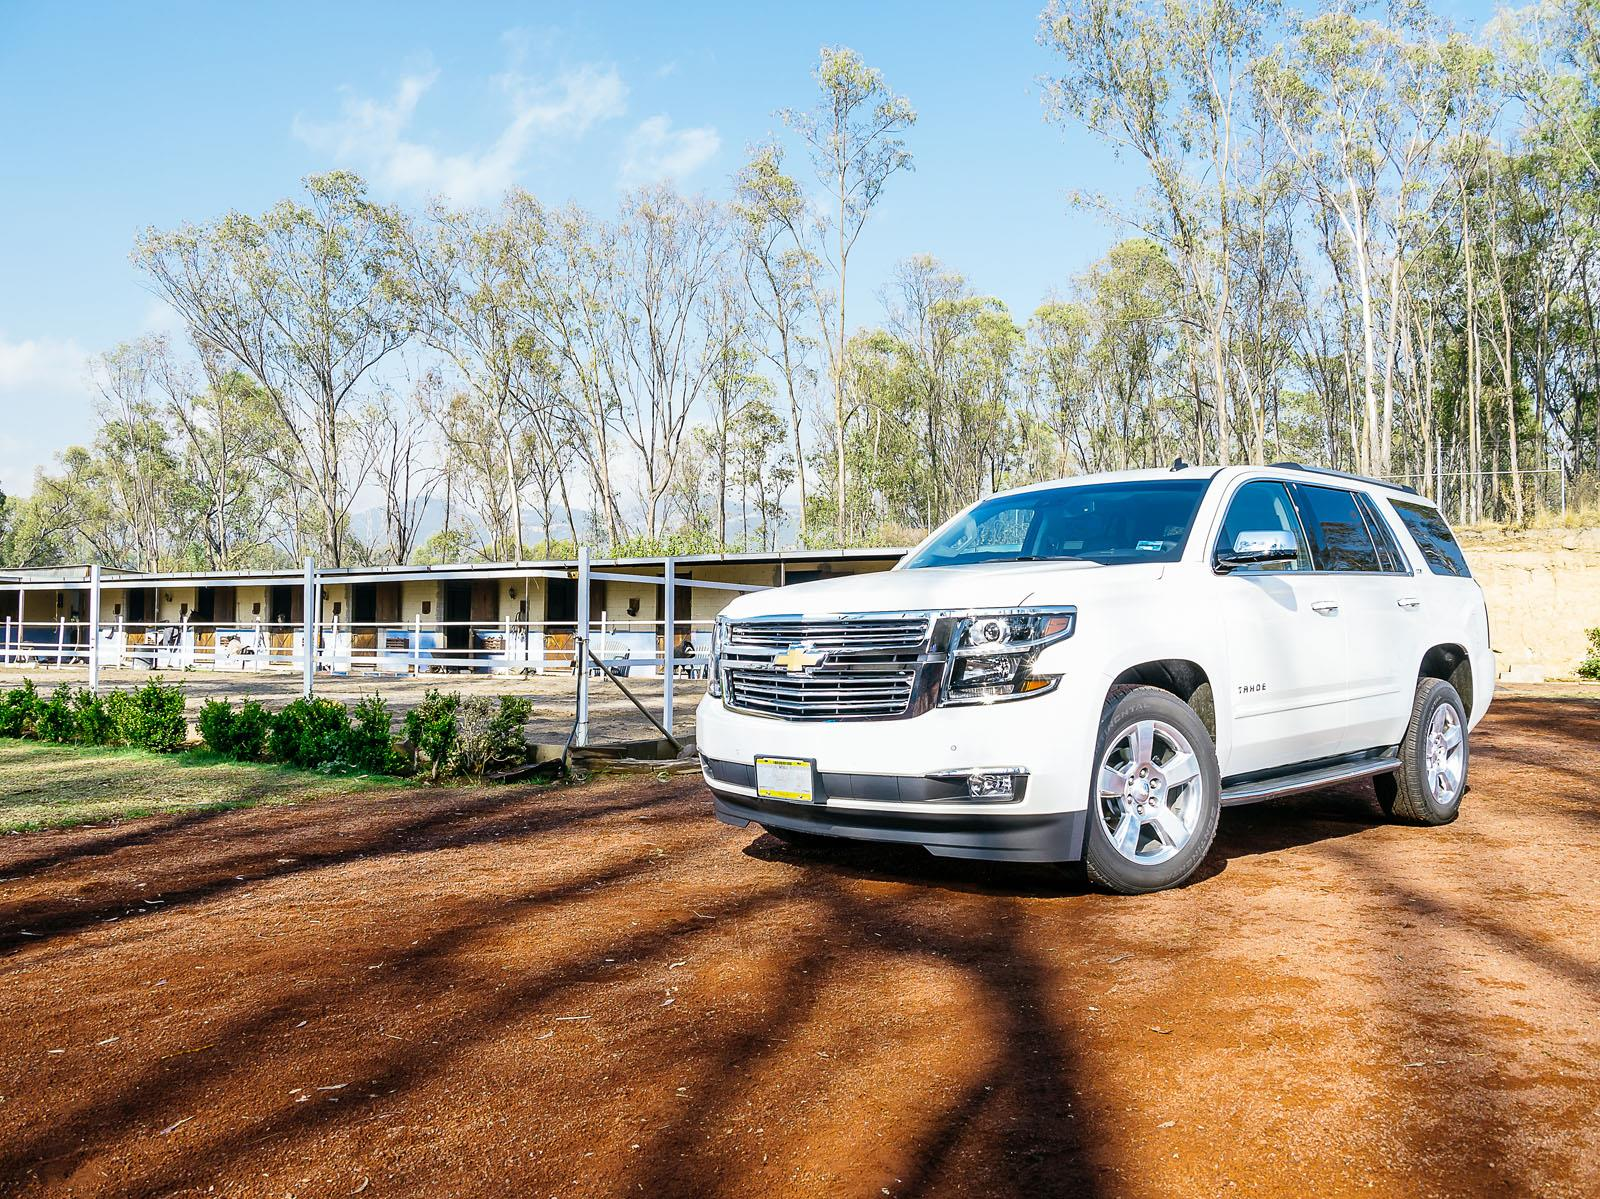 Hgtv Gmc Sweepstakes 2014 2015.html | Autos Post